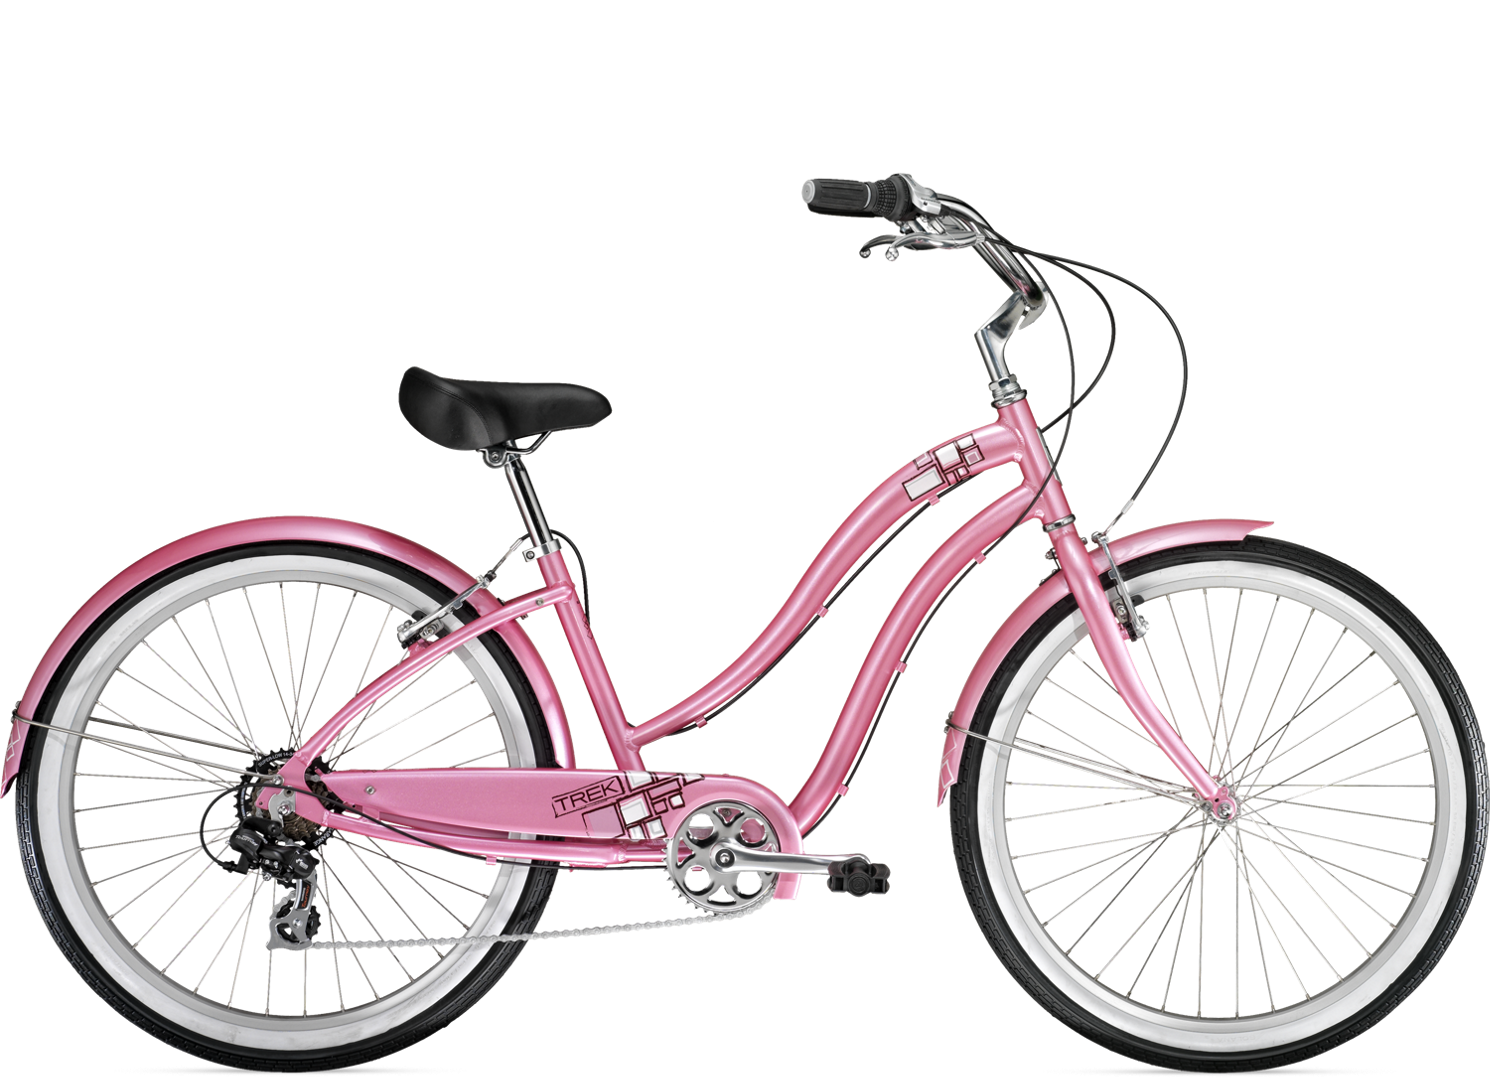 Calypso Women S Women S Collection Trek Bicycle Trek Bikes Womens Bike Pink Bike